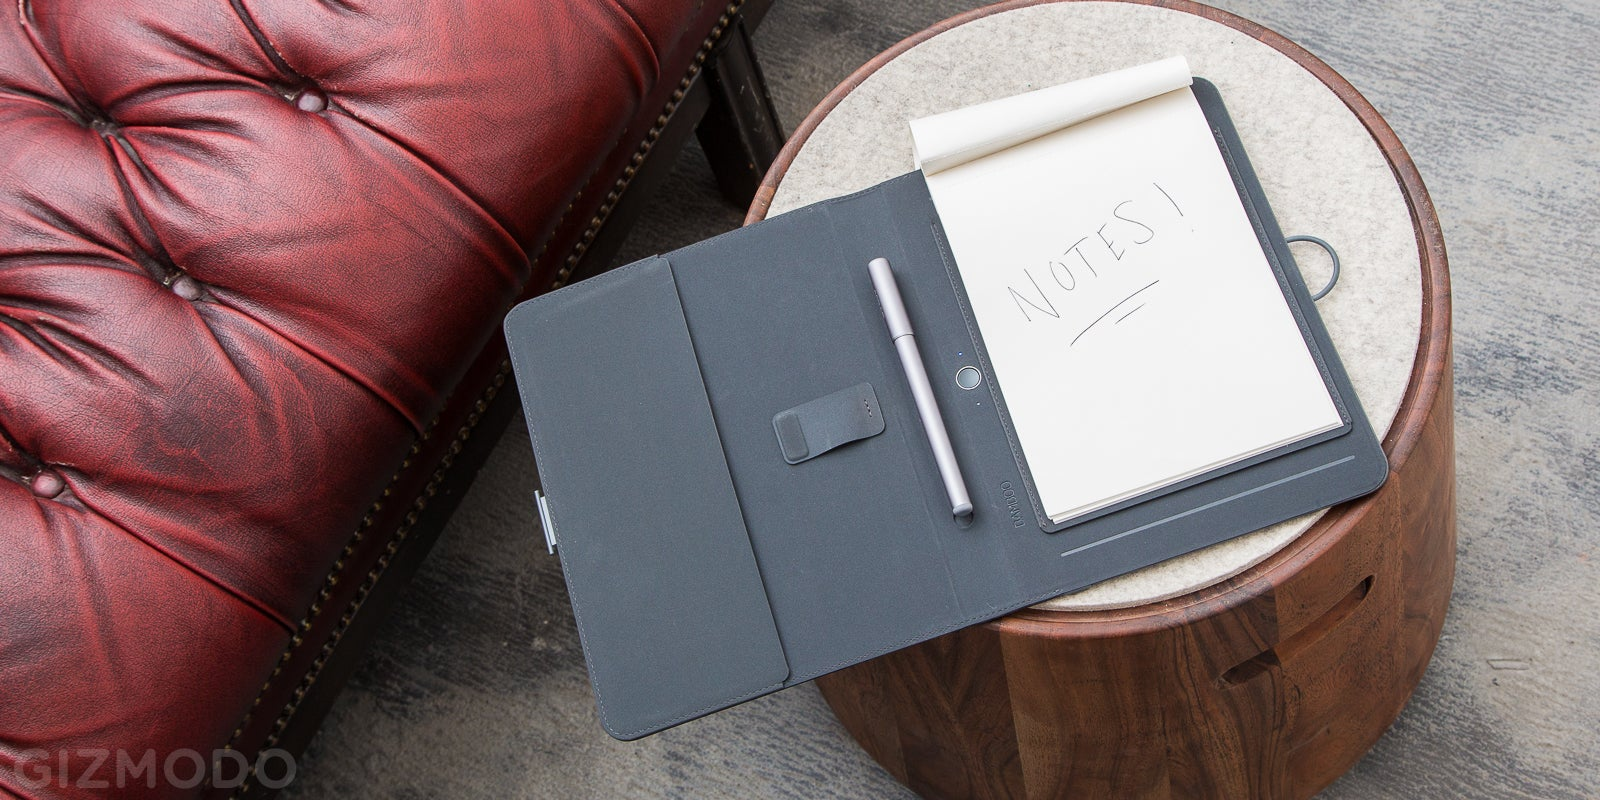 Wacom's New Digitising Notebook Could Bring Me Back to Pen and Paper